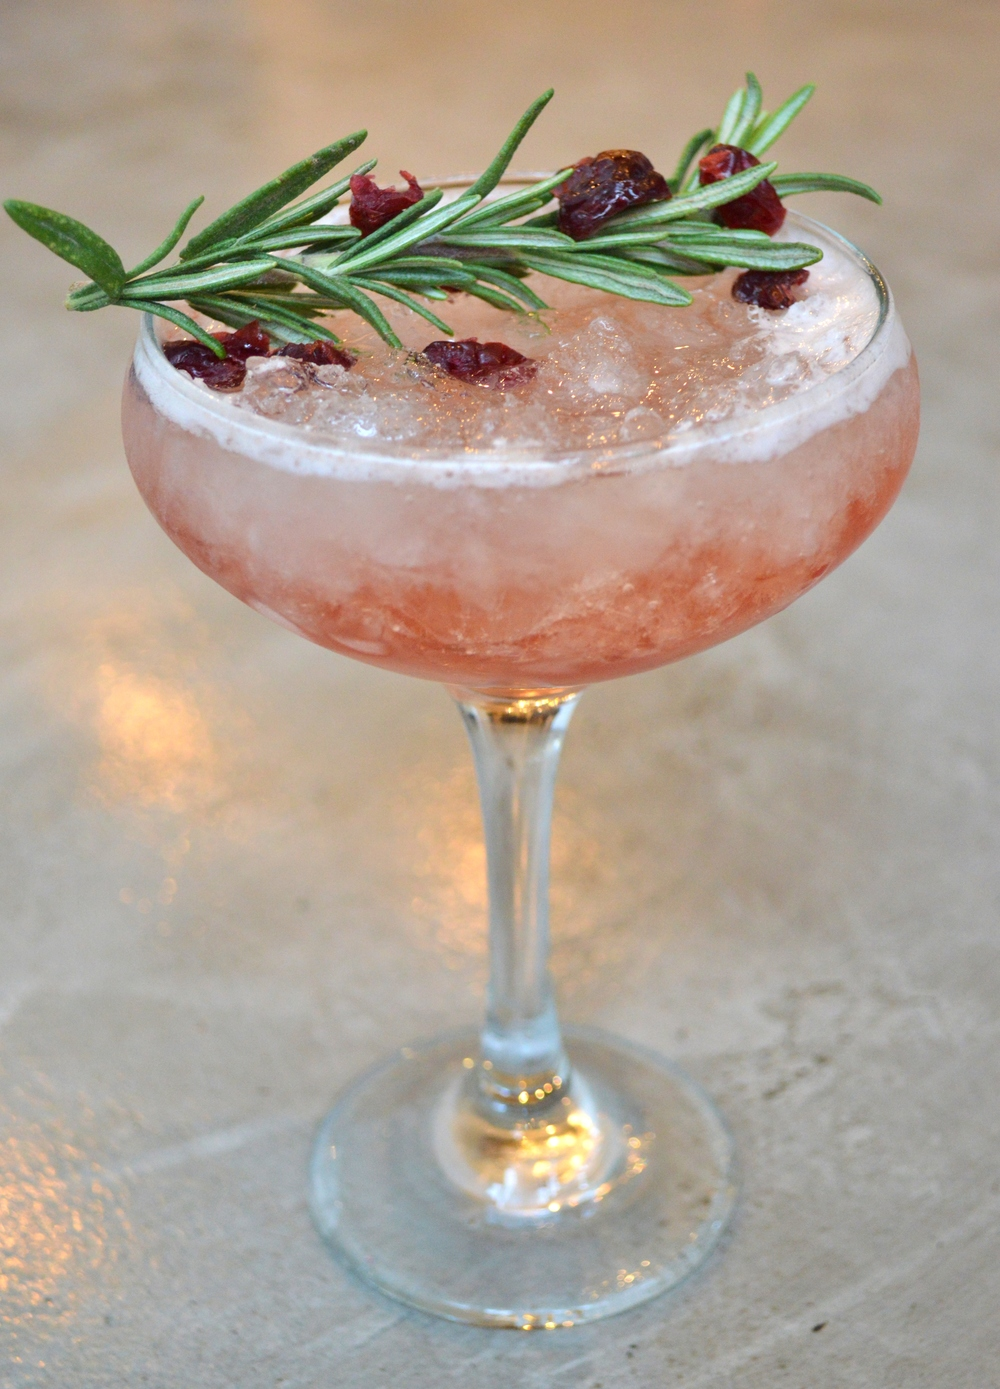 Champagne Julep (champagne, Maison Rouge vsop cognac, rosemary, spiced cranberry)